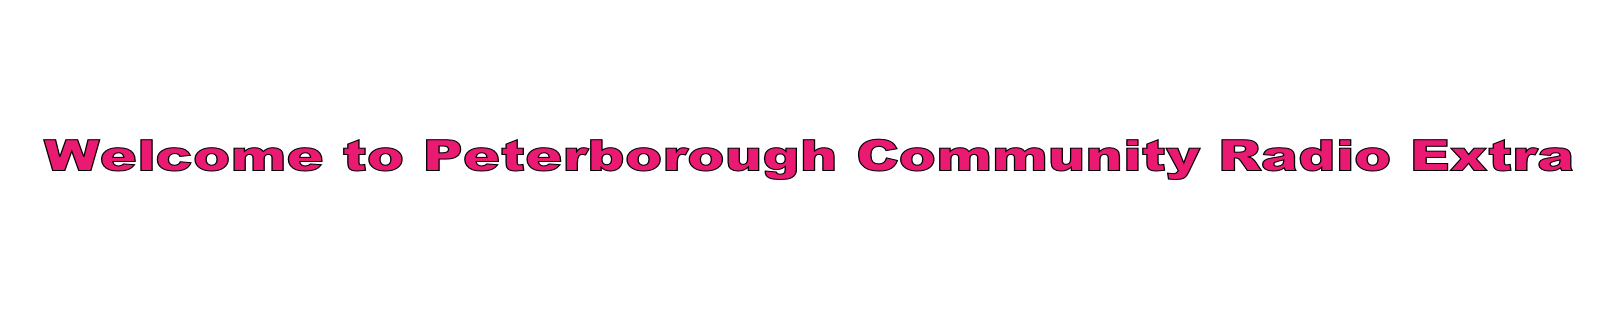 Welcome to Peterborough Community Radio Extra